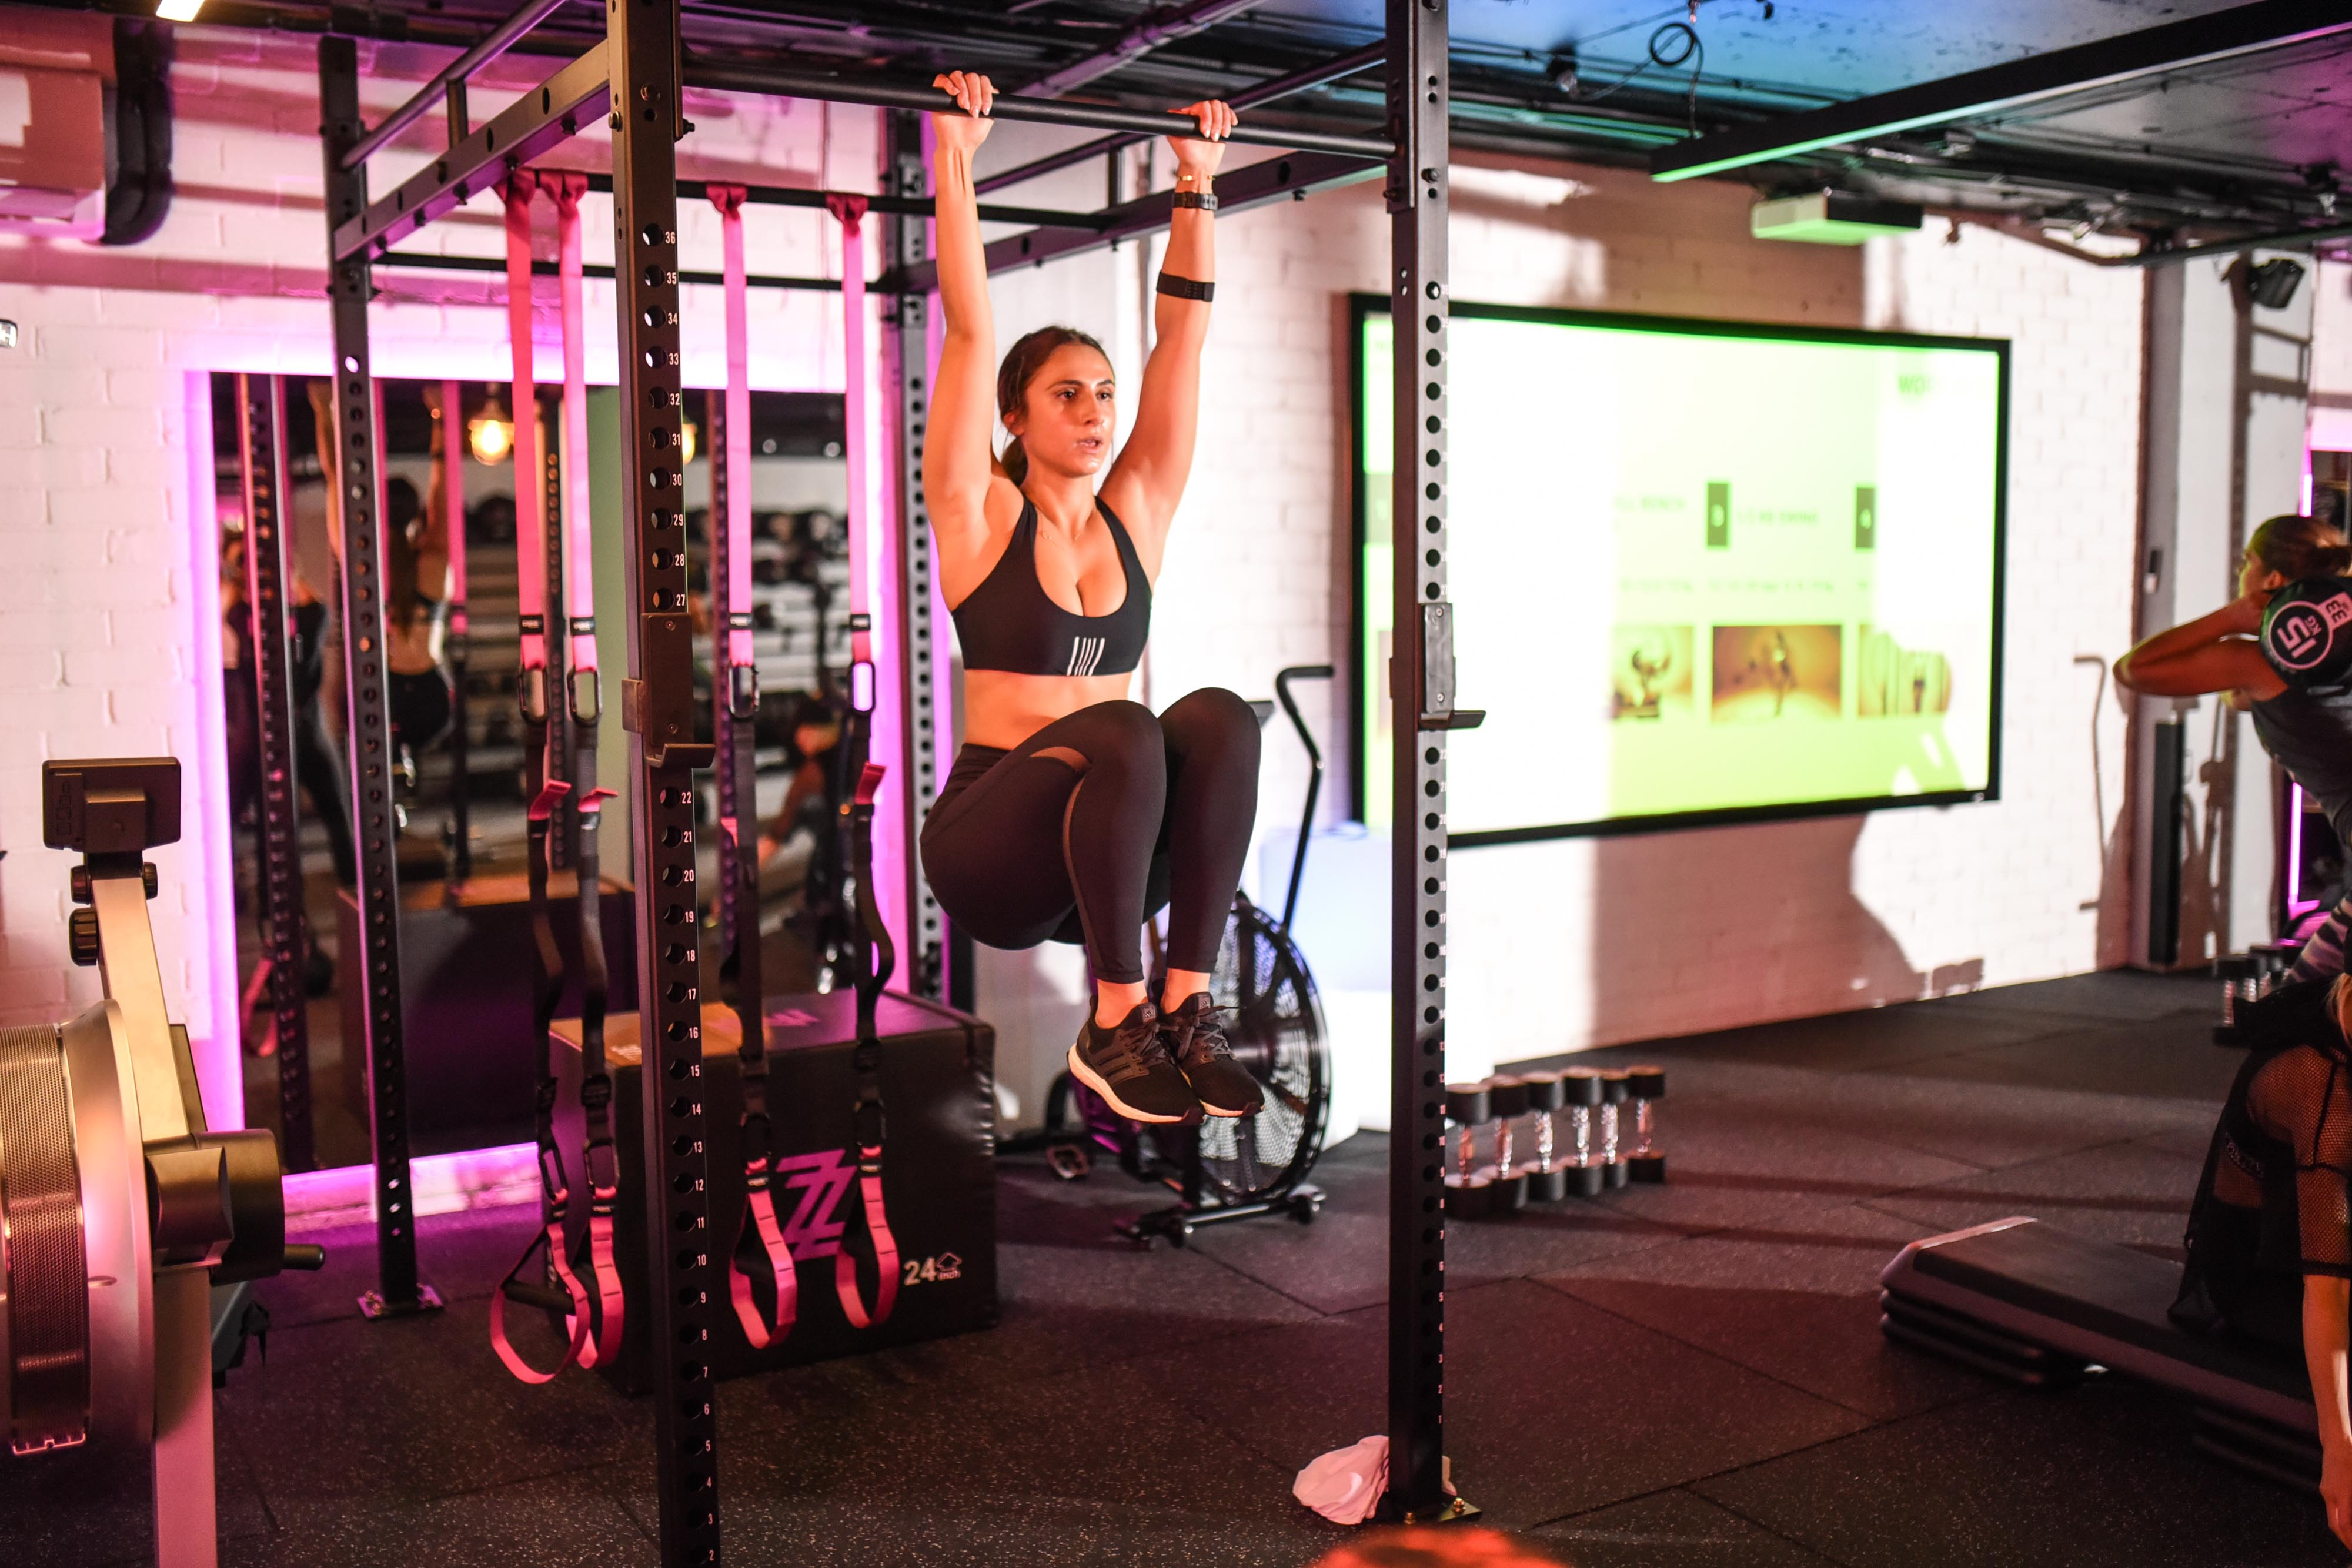 zadi-the-game-changer-in-female-fitness-studios-for-millenial-women-not-a-gym-7